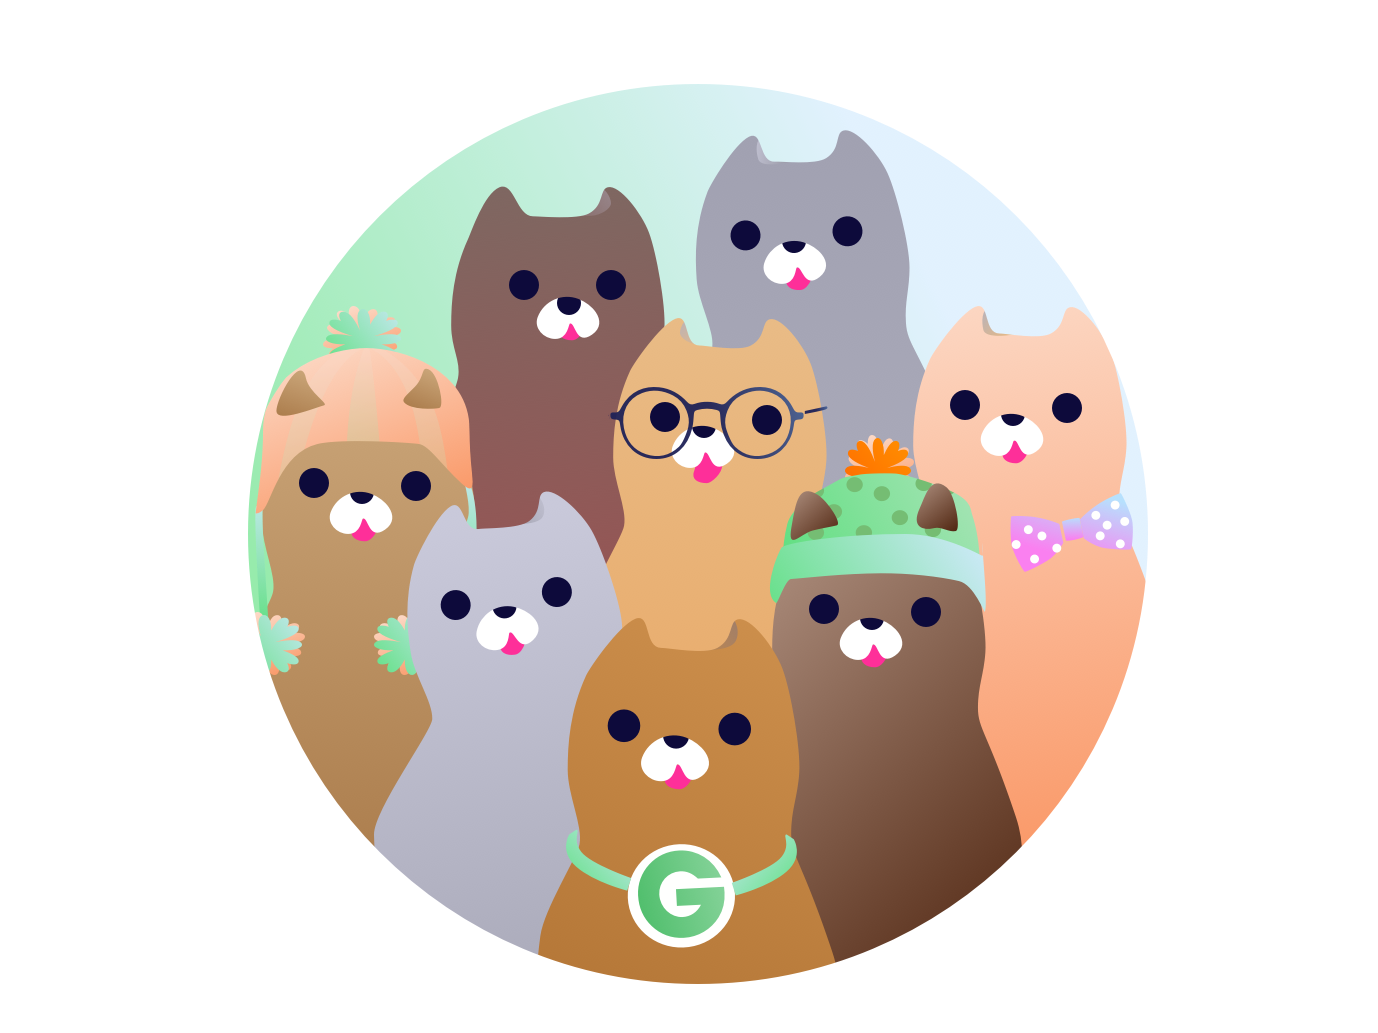 The Groupon Fam - A Portrait groupon cat design branding illustration